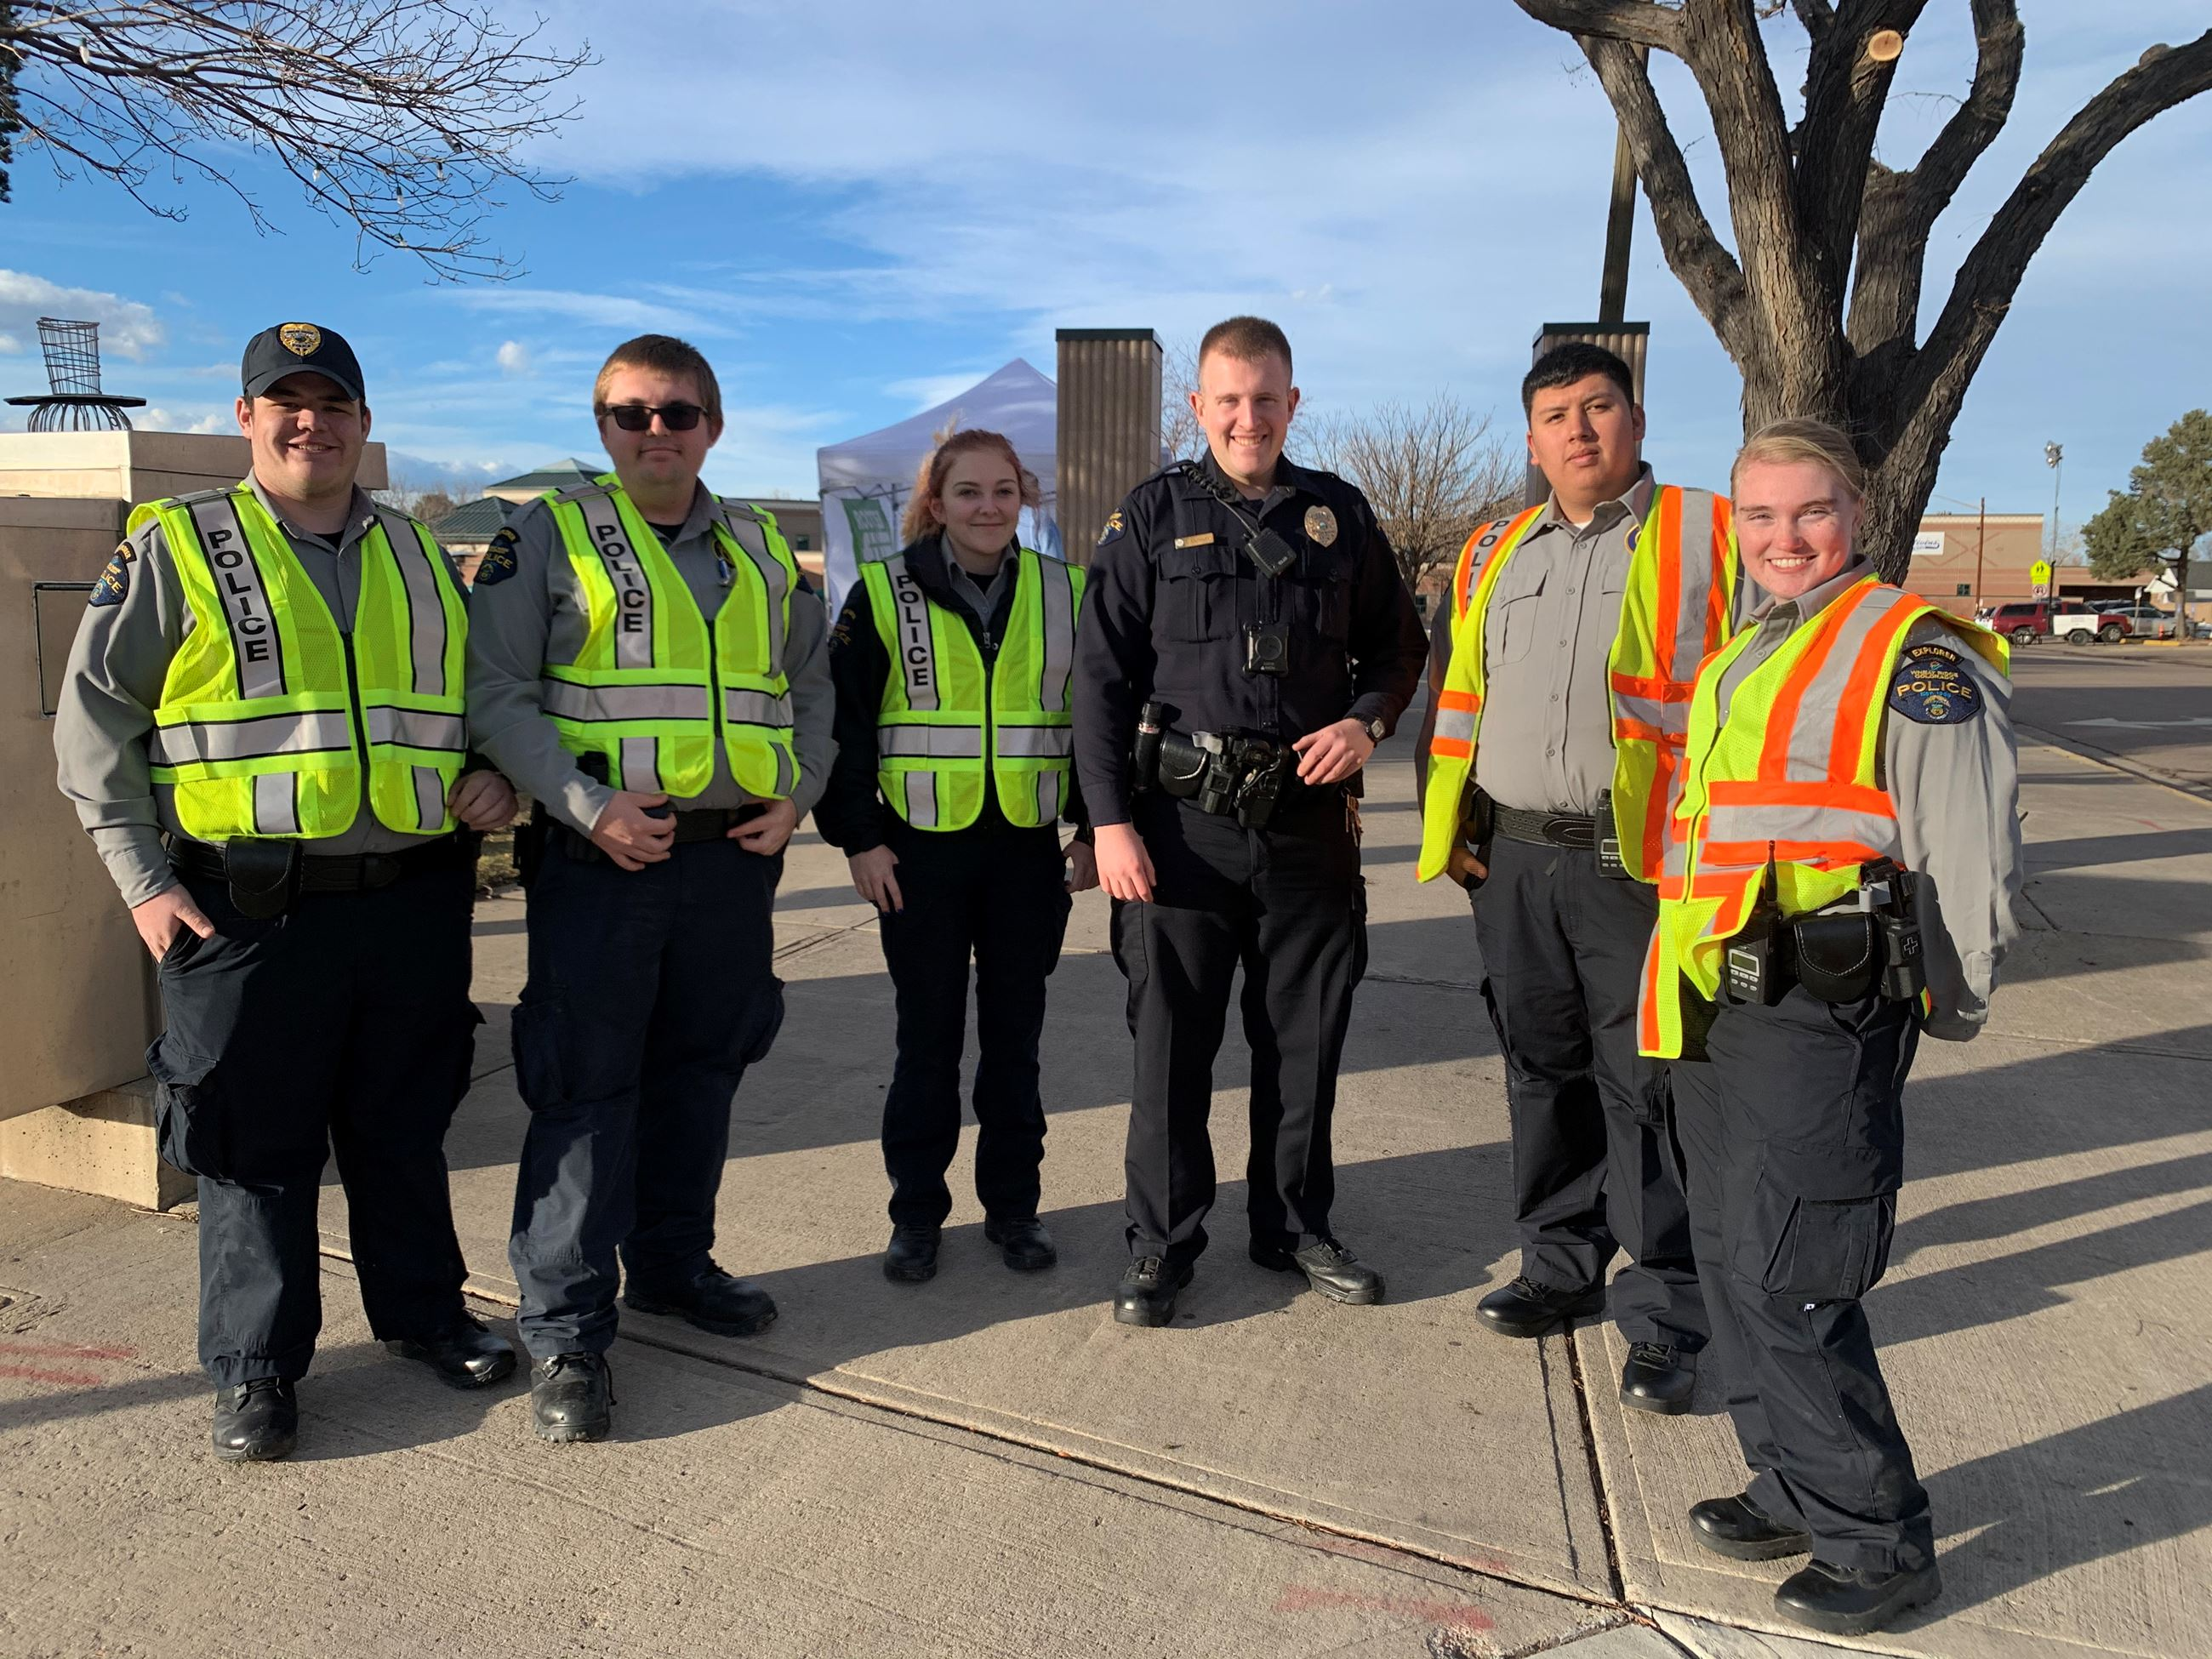 Helping with traffic control at the Holiday Celebration